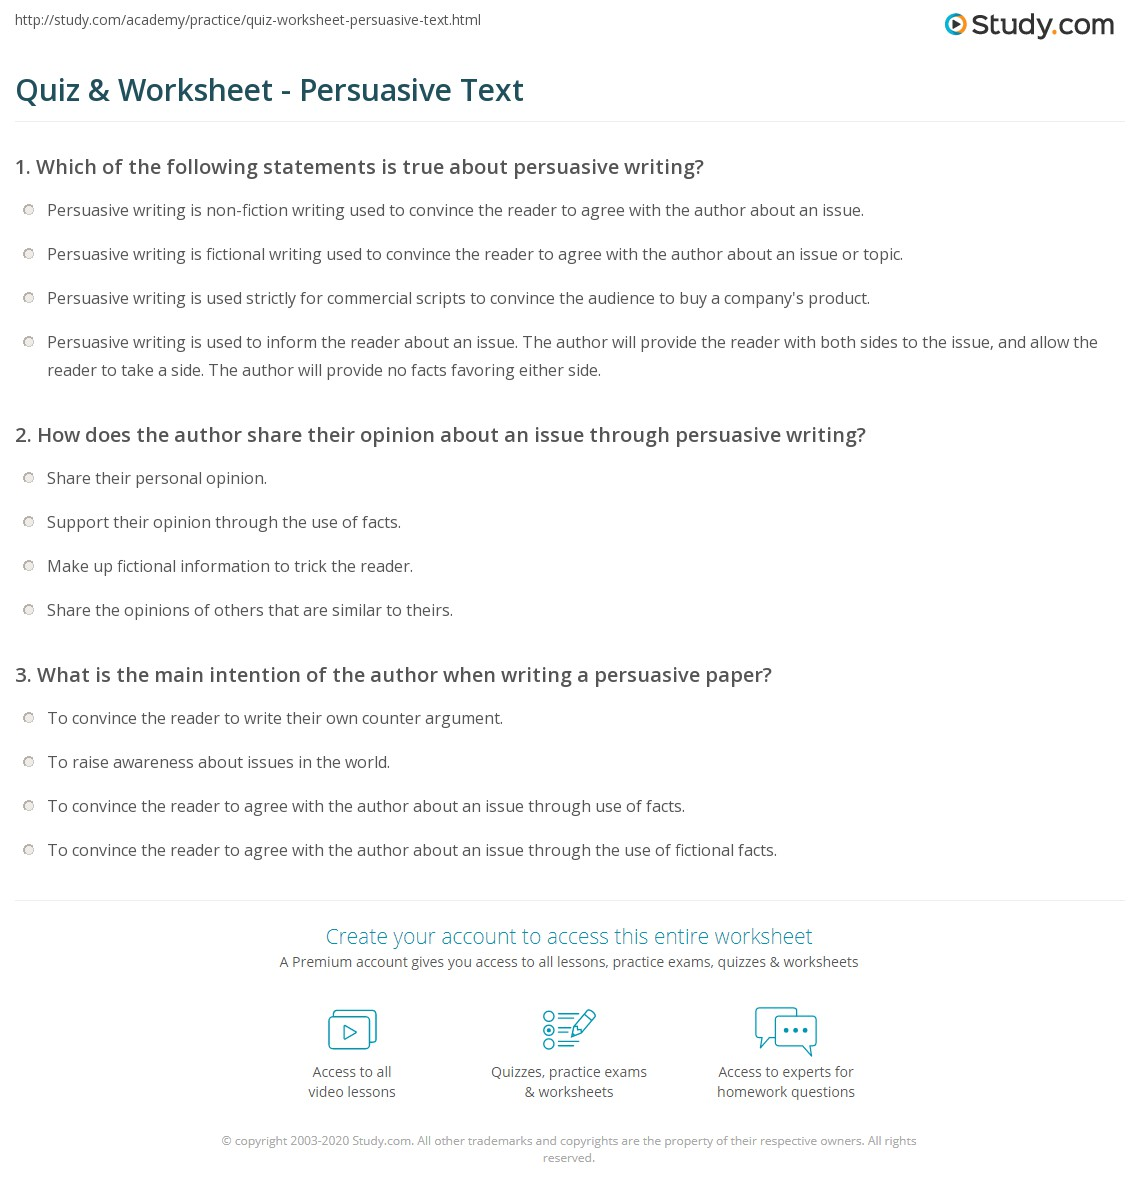 Quiz Worksheet Persuasive Text Study